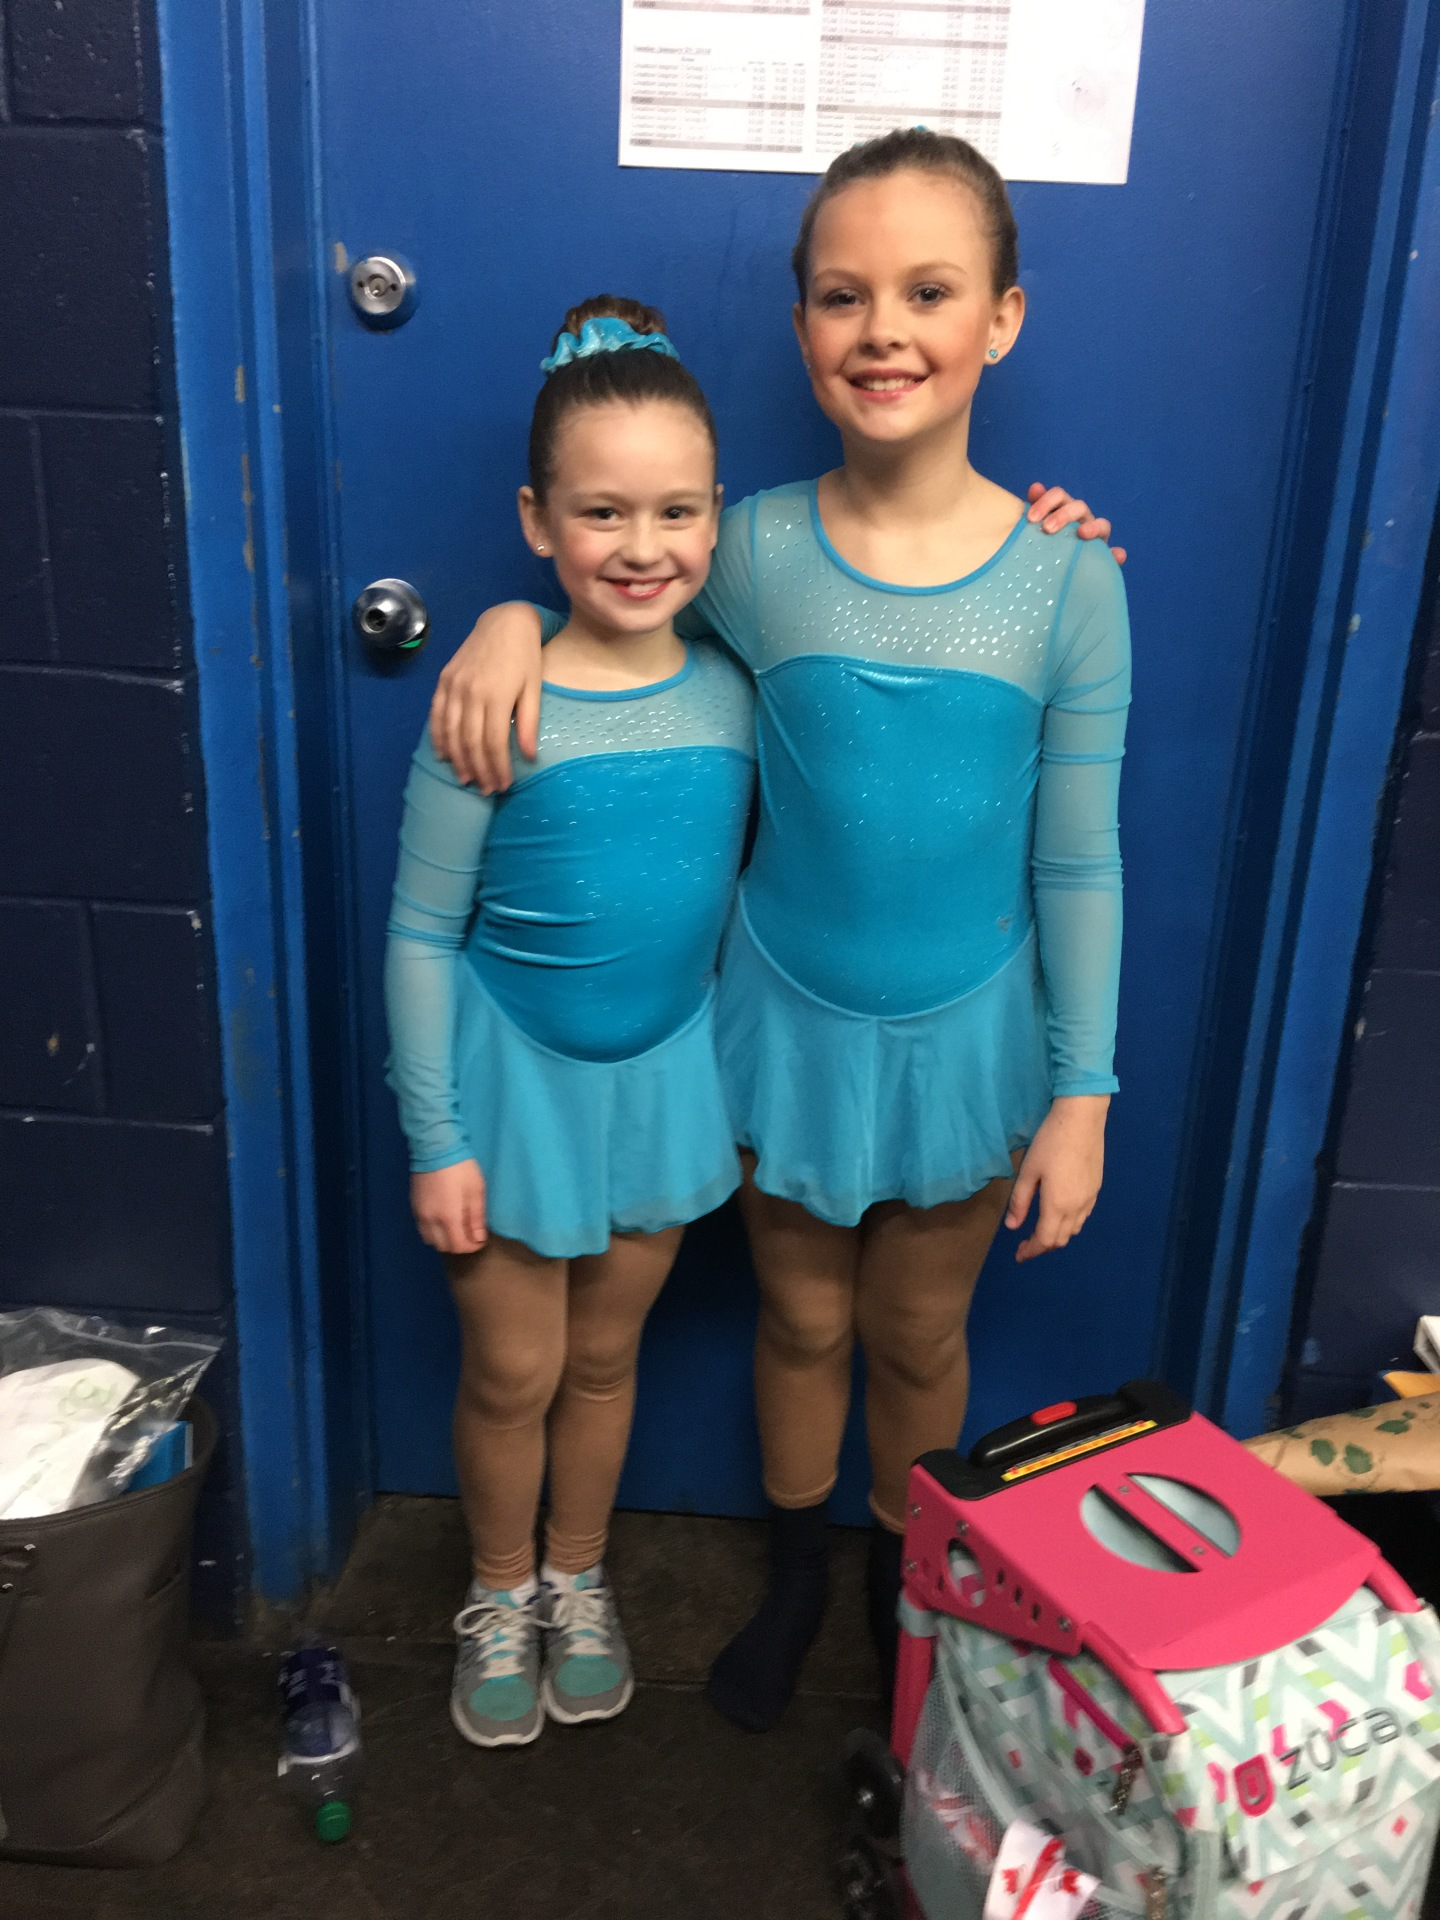 Sunset Country Regionals 2018 - Star 2 Team Event